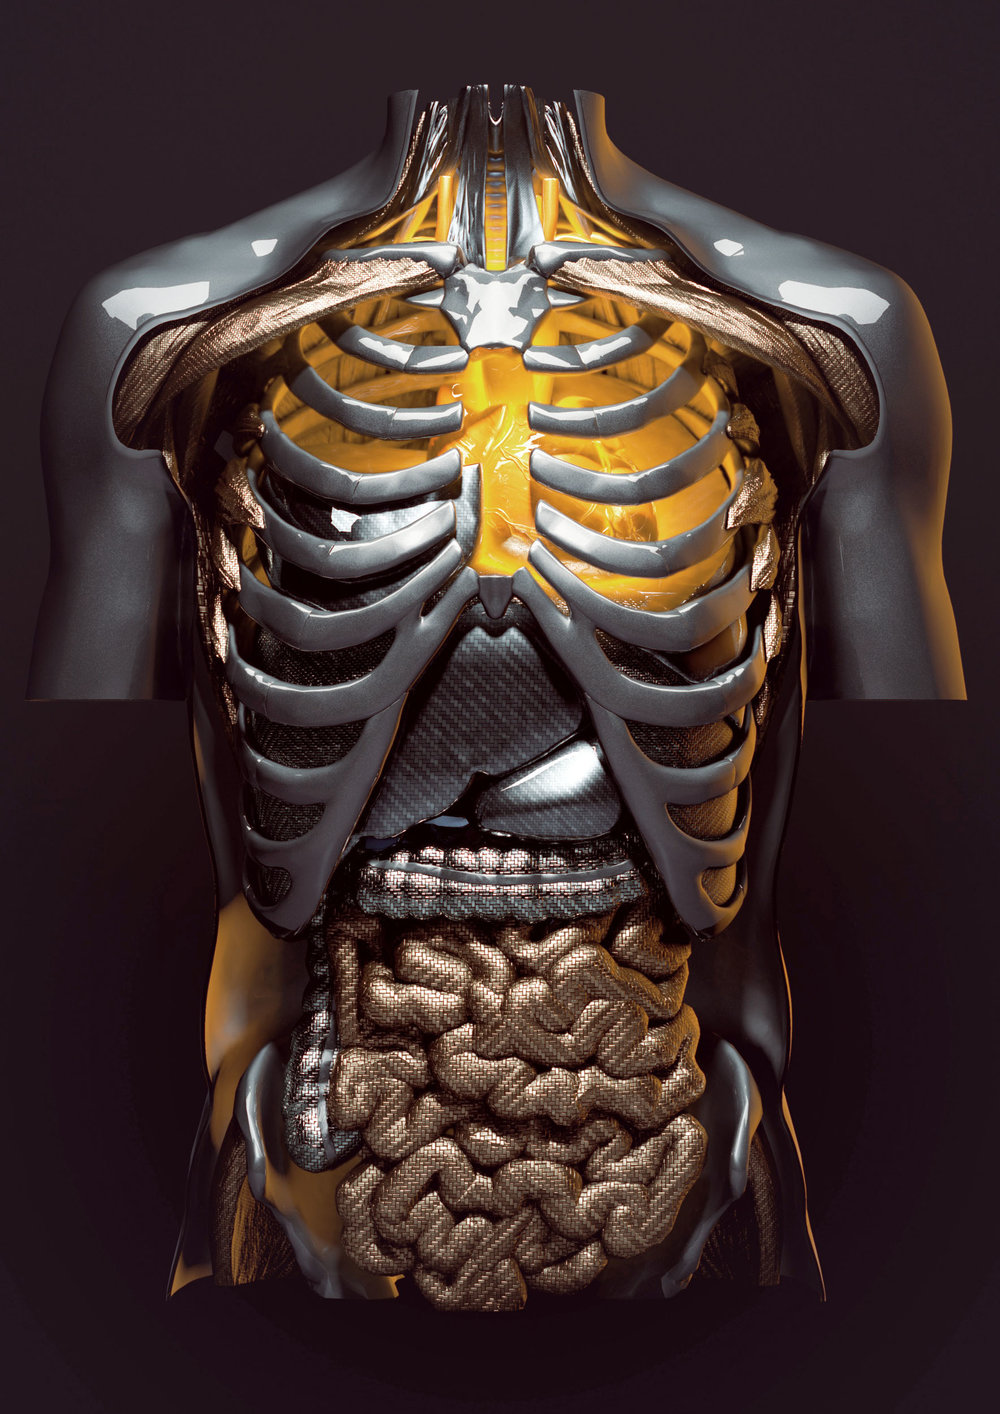 BOOM_CGI_MEDICAL_torso-engine.jpg